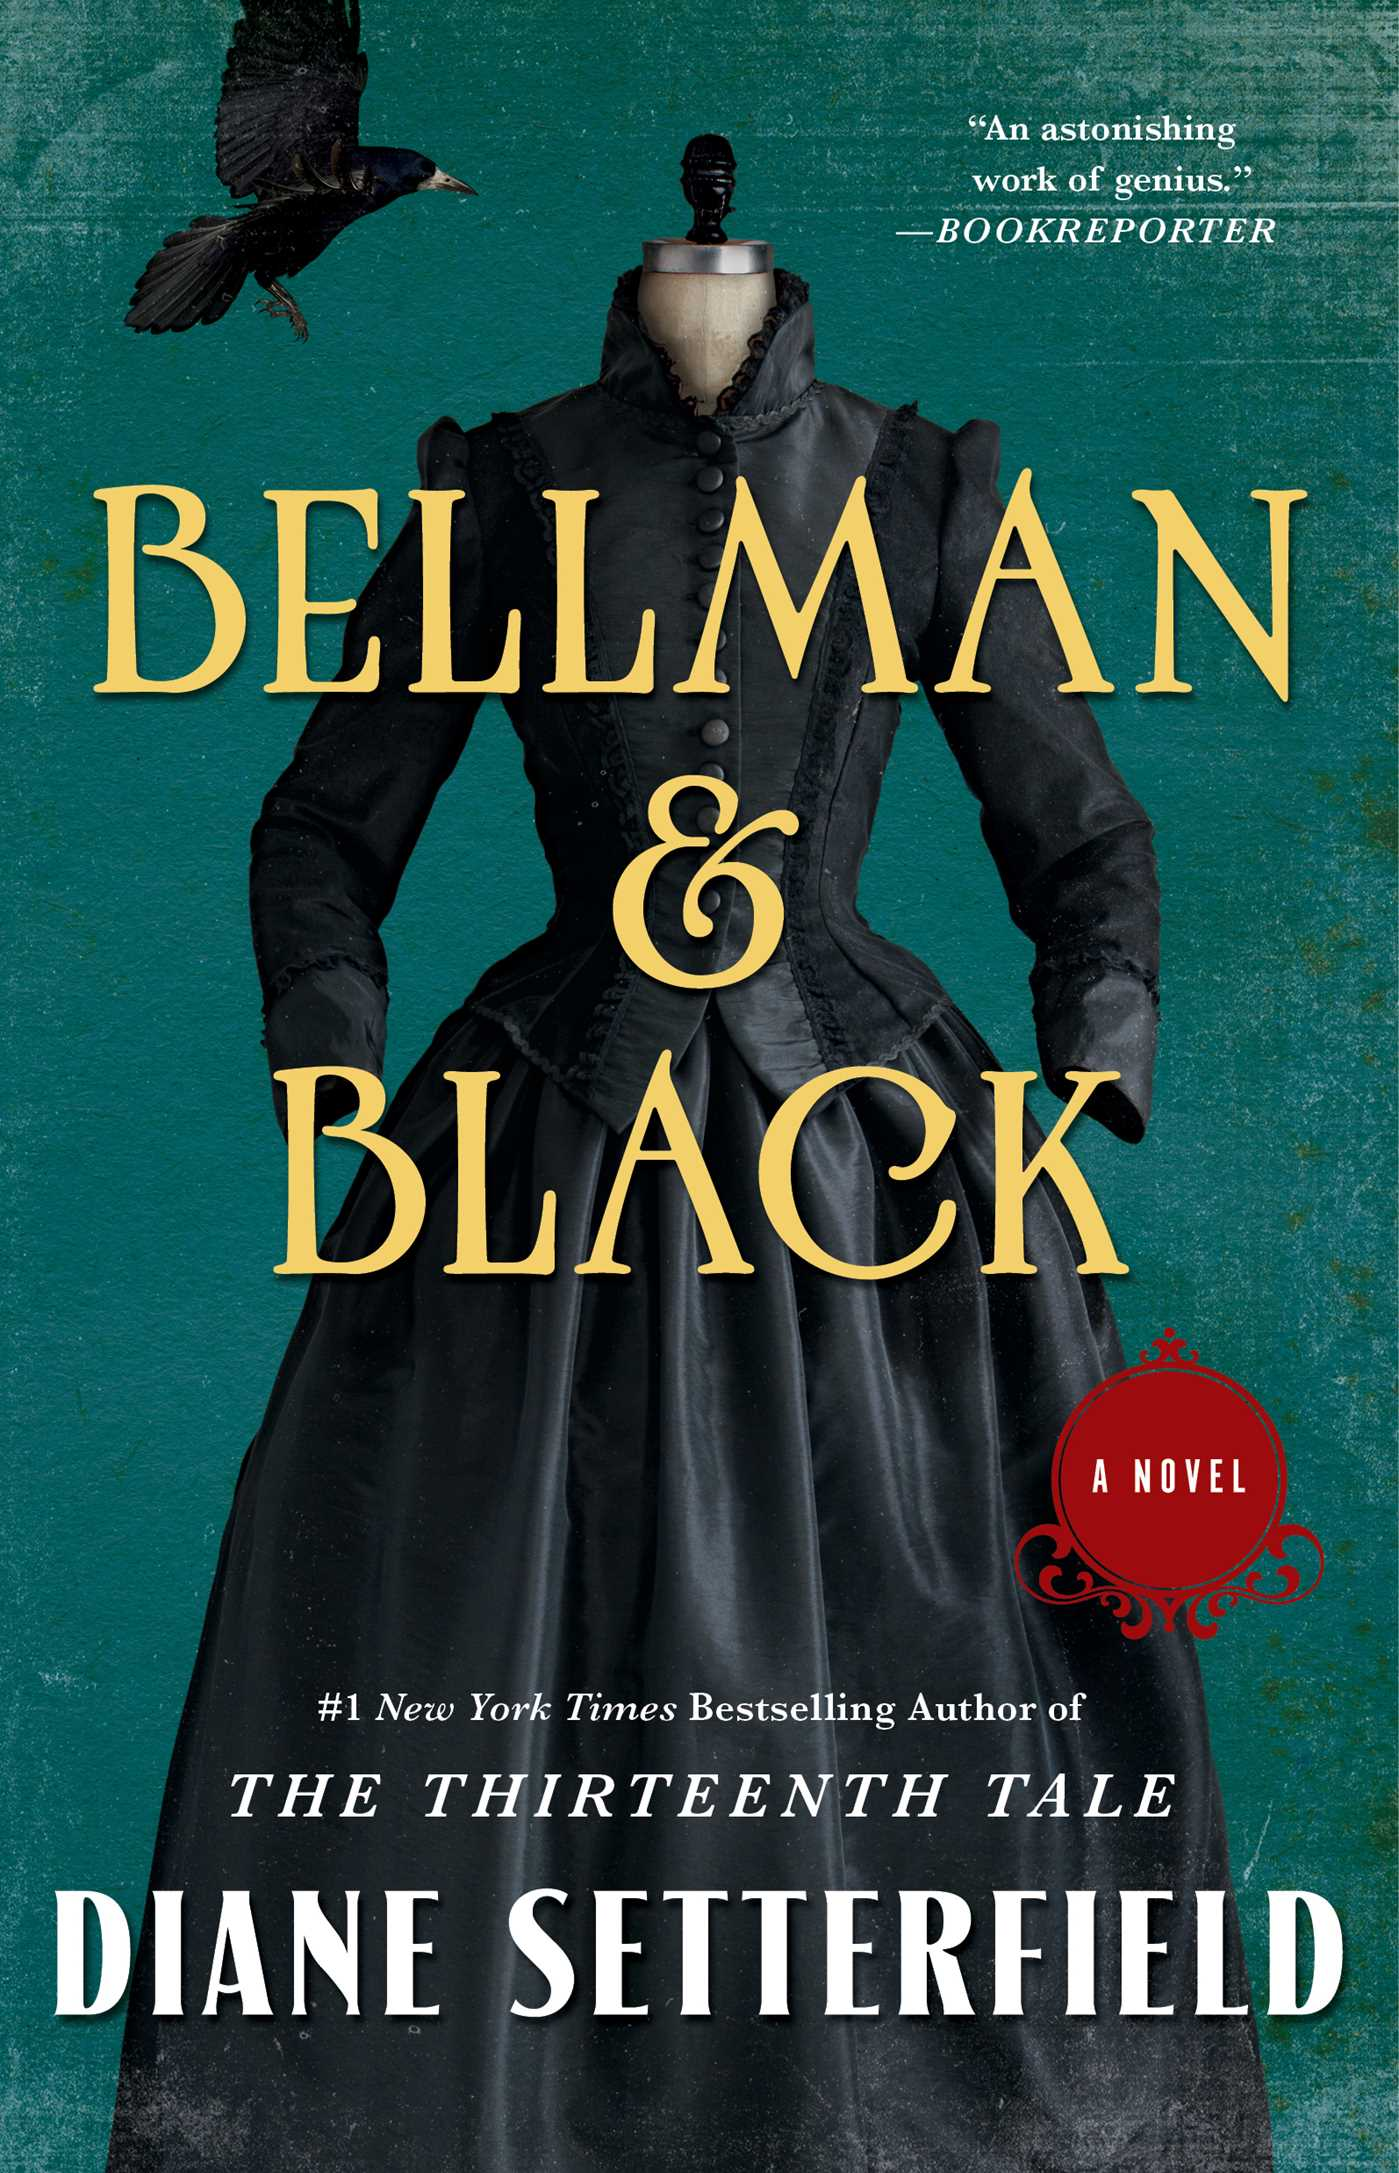 Bellman black 9781476711997 hr